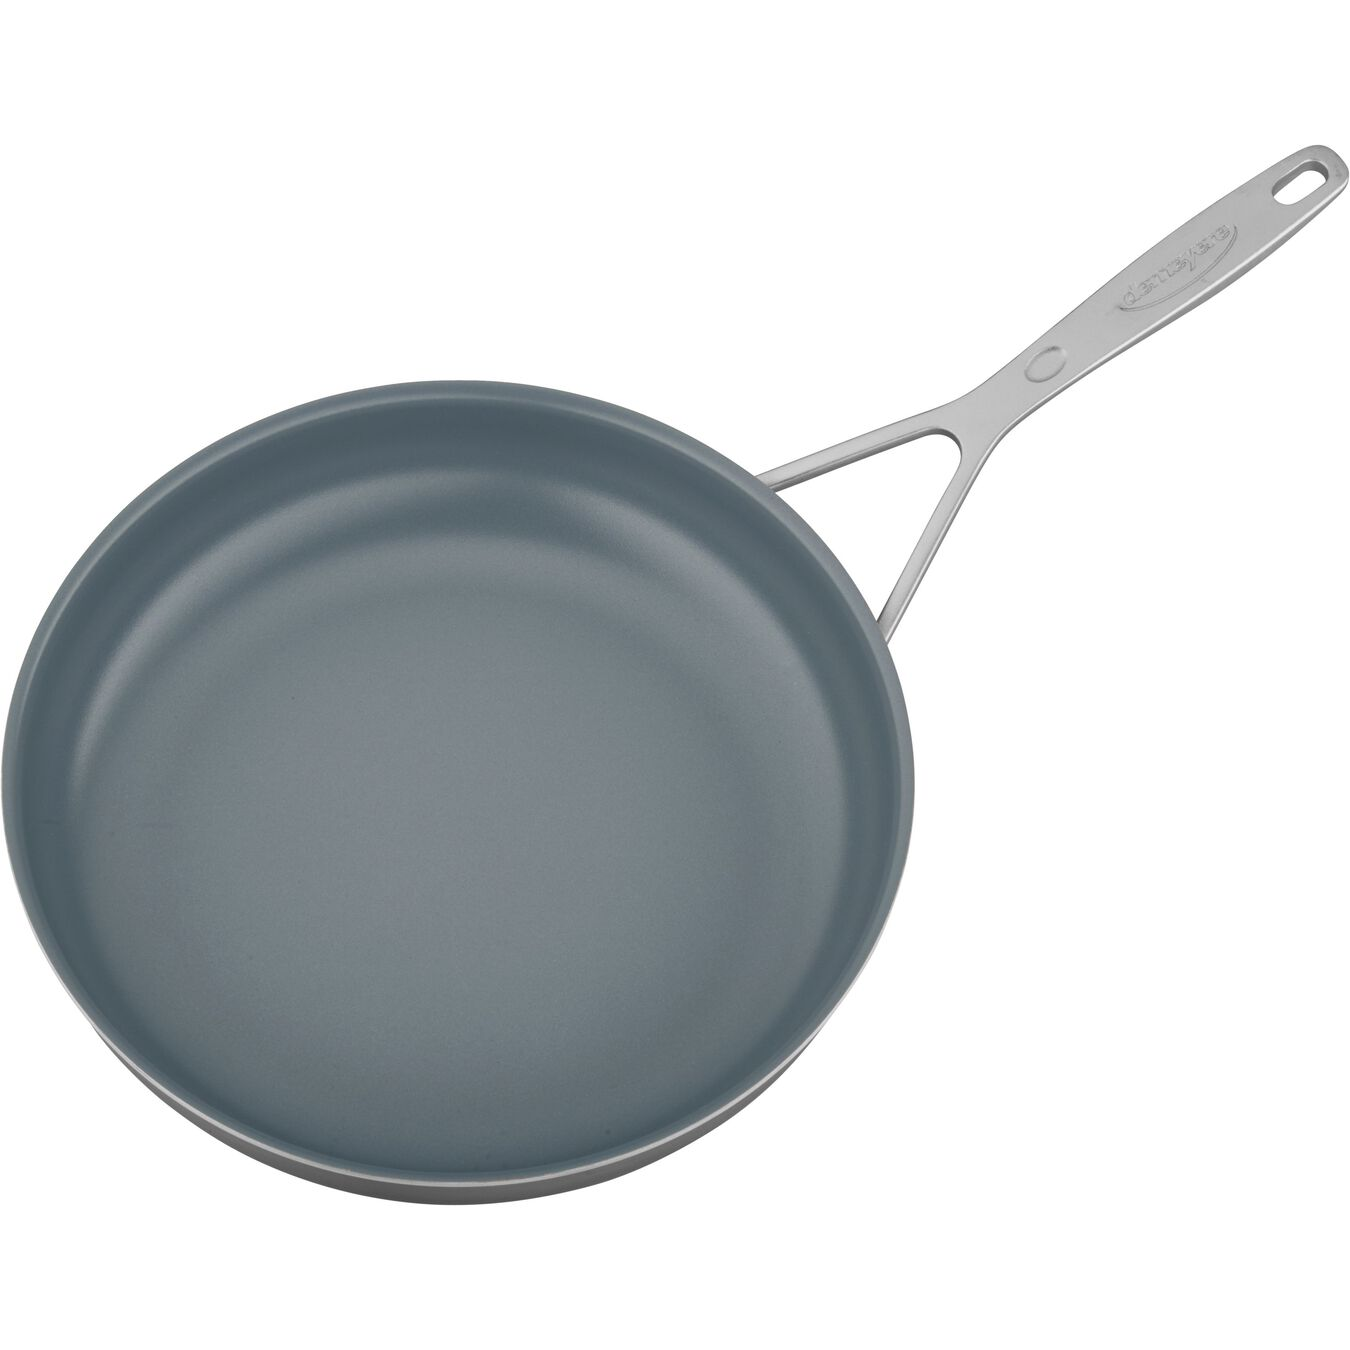 11-inch, 18/10 Stainless Steel, Ceramic, Frying pan,,large 4